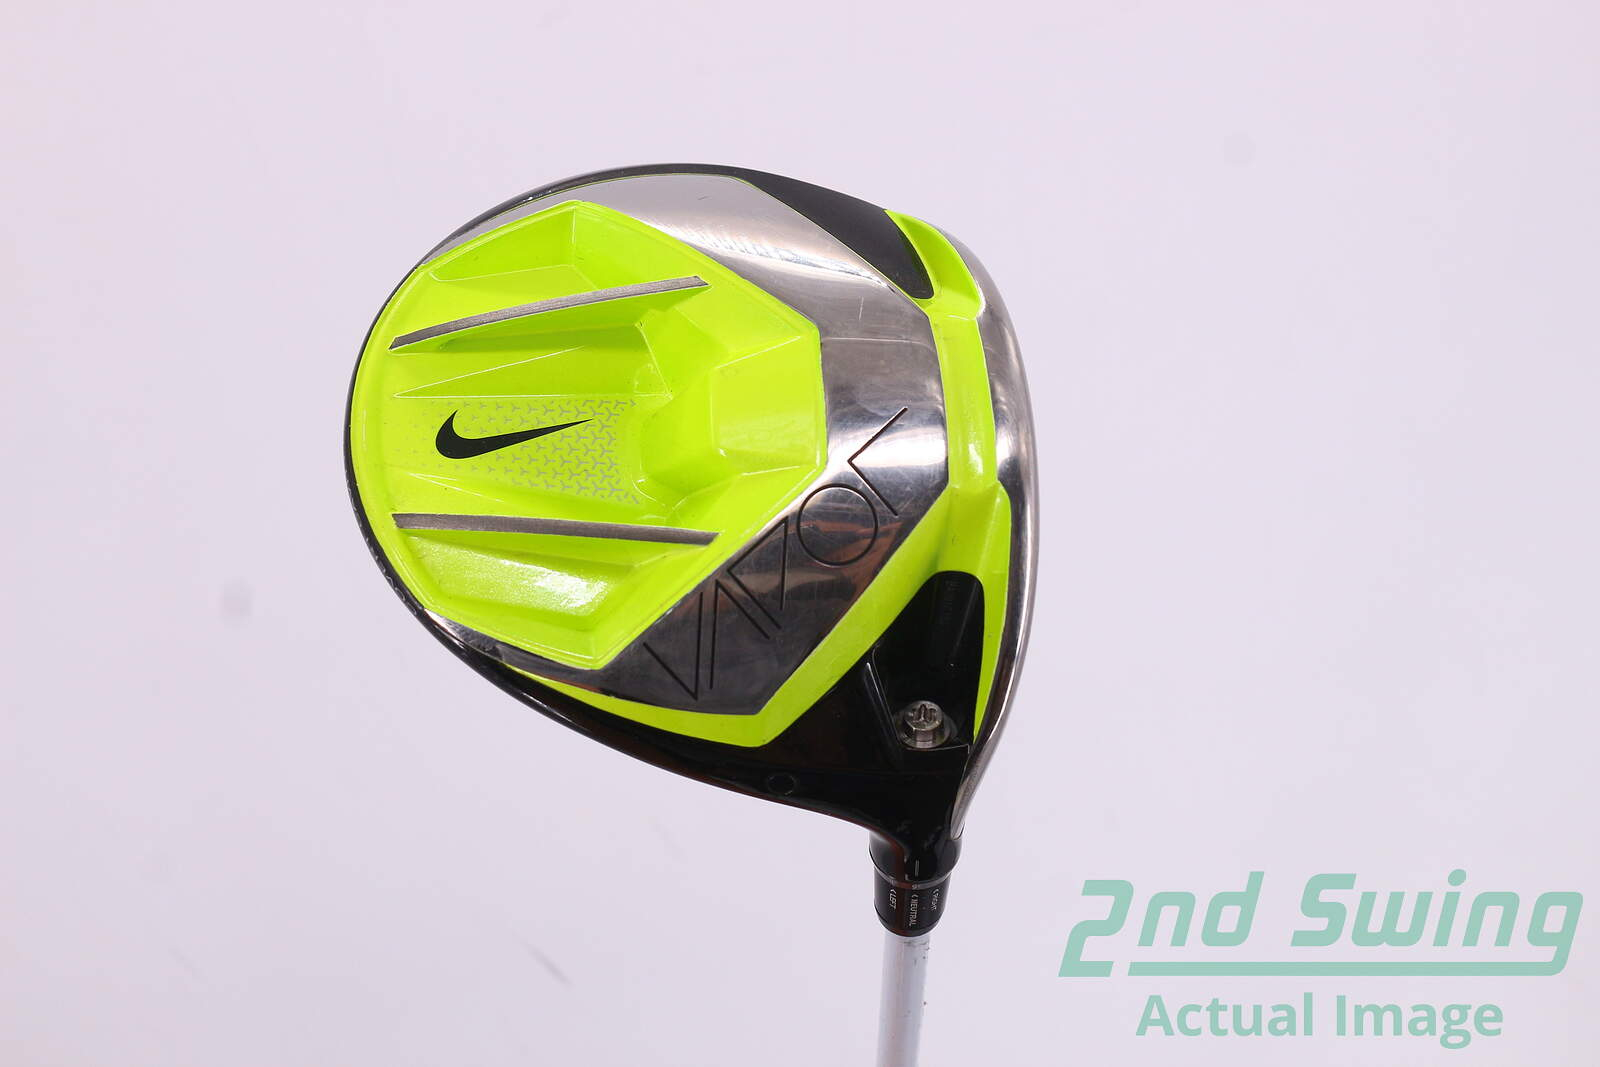 Confrontar Delegación Implacable  Used Nike Vapor Speed Driver 9.5° Mitsubishi Rayon Fubuki Z 50 Graphite  Regular Right Handed 45.25in Used Golf Club   2nd Swing Golf